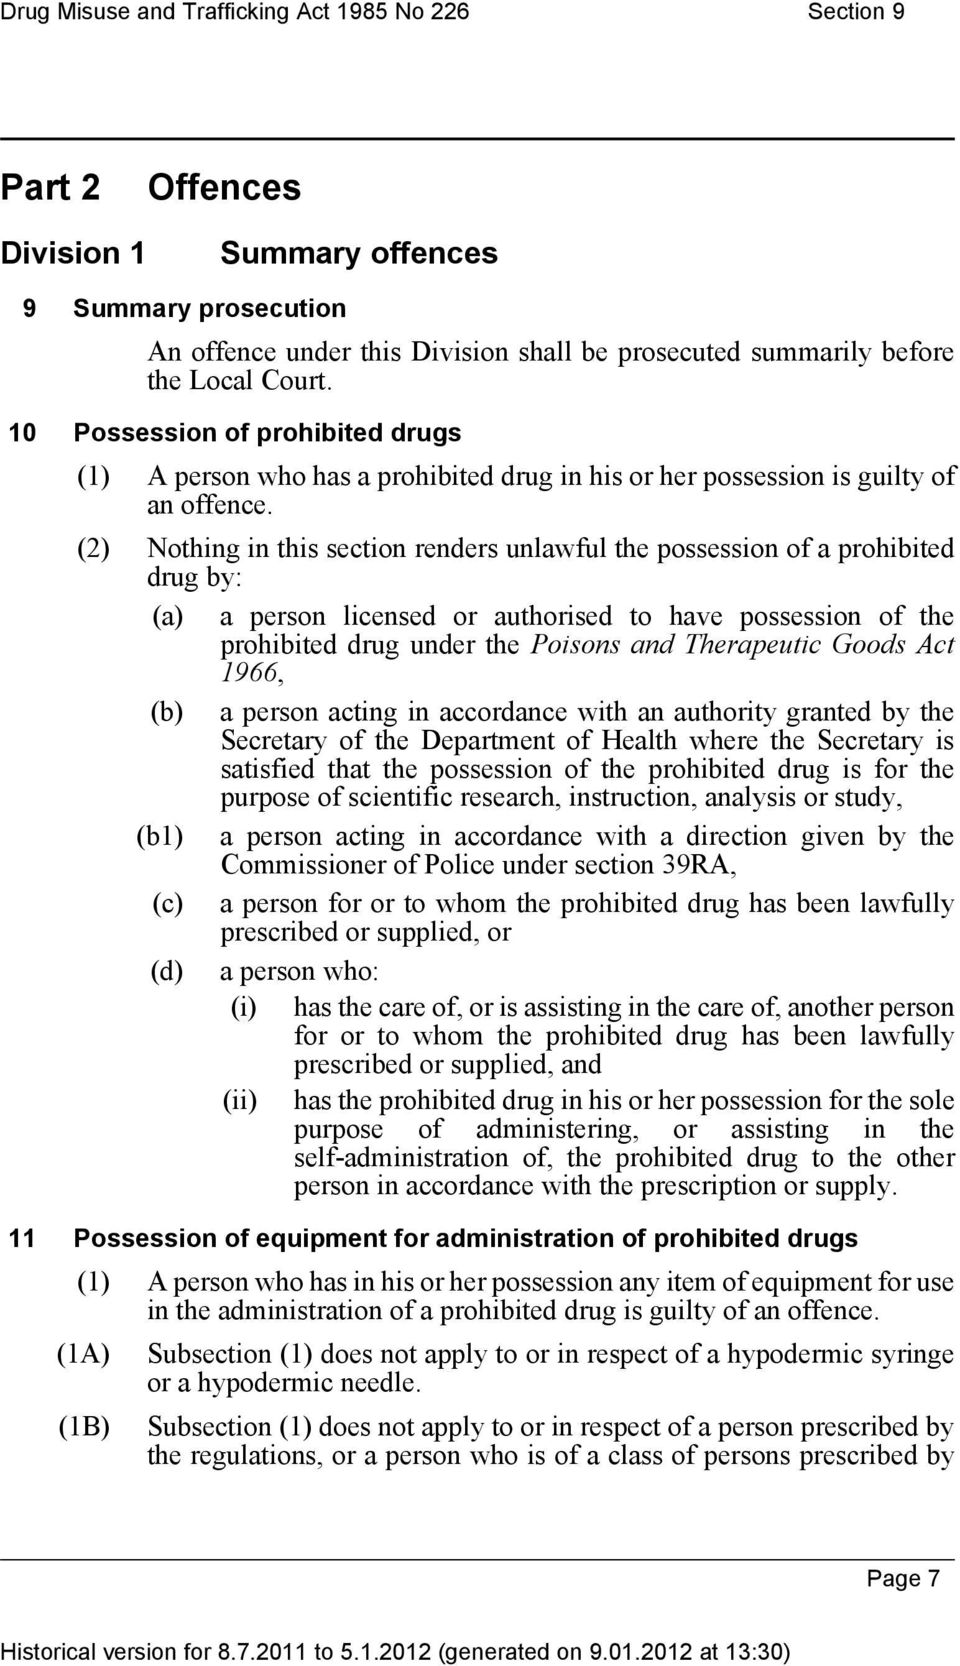 (2) Nothin in this section renders unlawful the possession of a prohibited dru by: (a) a person licensed or authorised to have possession of the prohibited dru under the Poisons and Therapeutic Goods